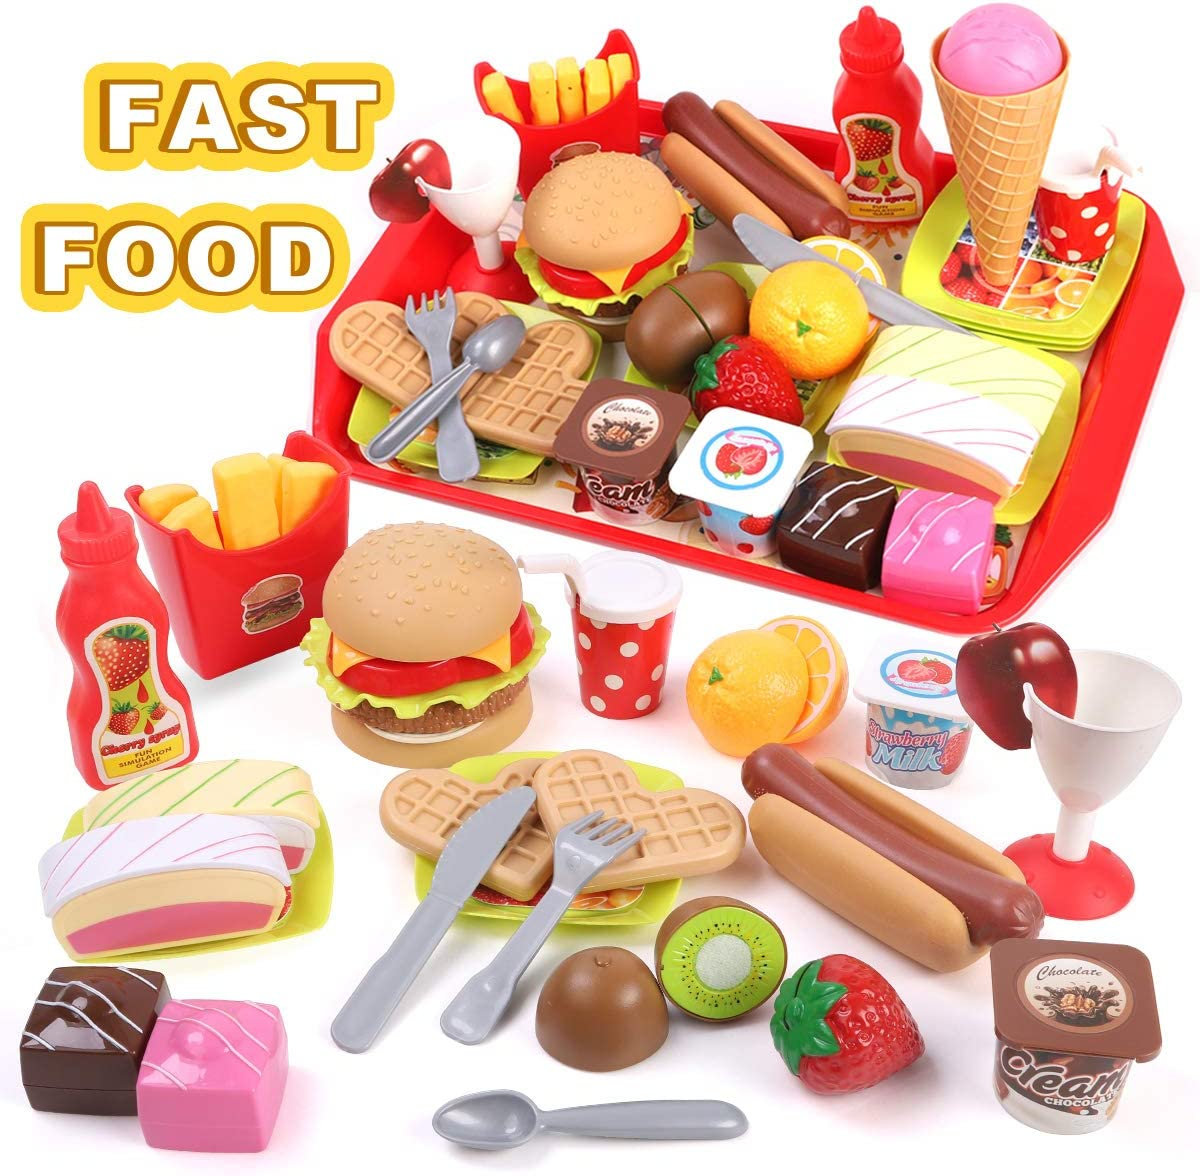 GILOBABY Kids Play Food Toys, Cutting Fast Food Set Kitchen Toys for Toddler Girls Boys, Pretend Role Play Toys for Educational Preschool Learning